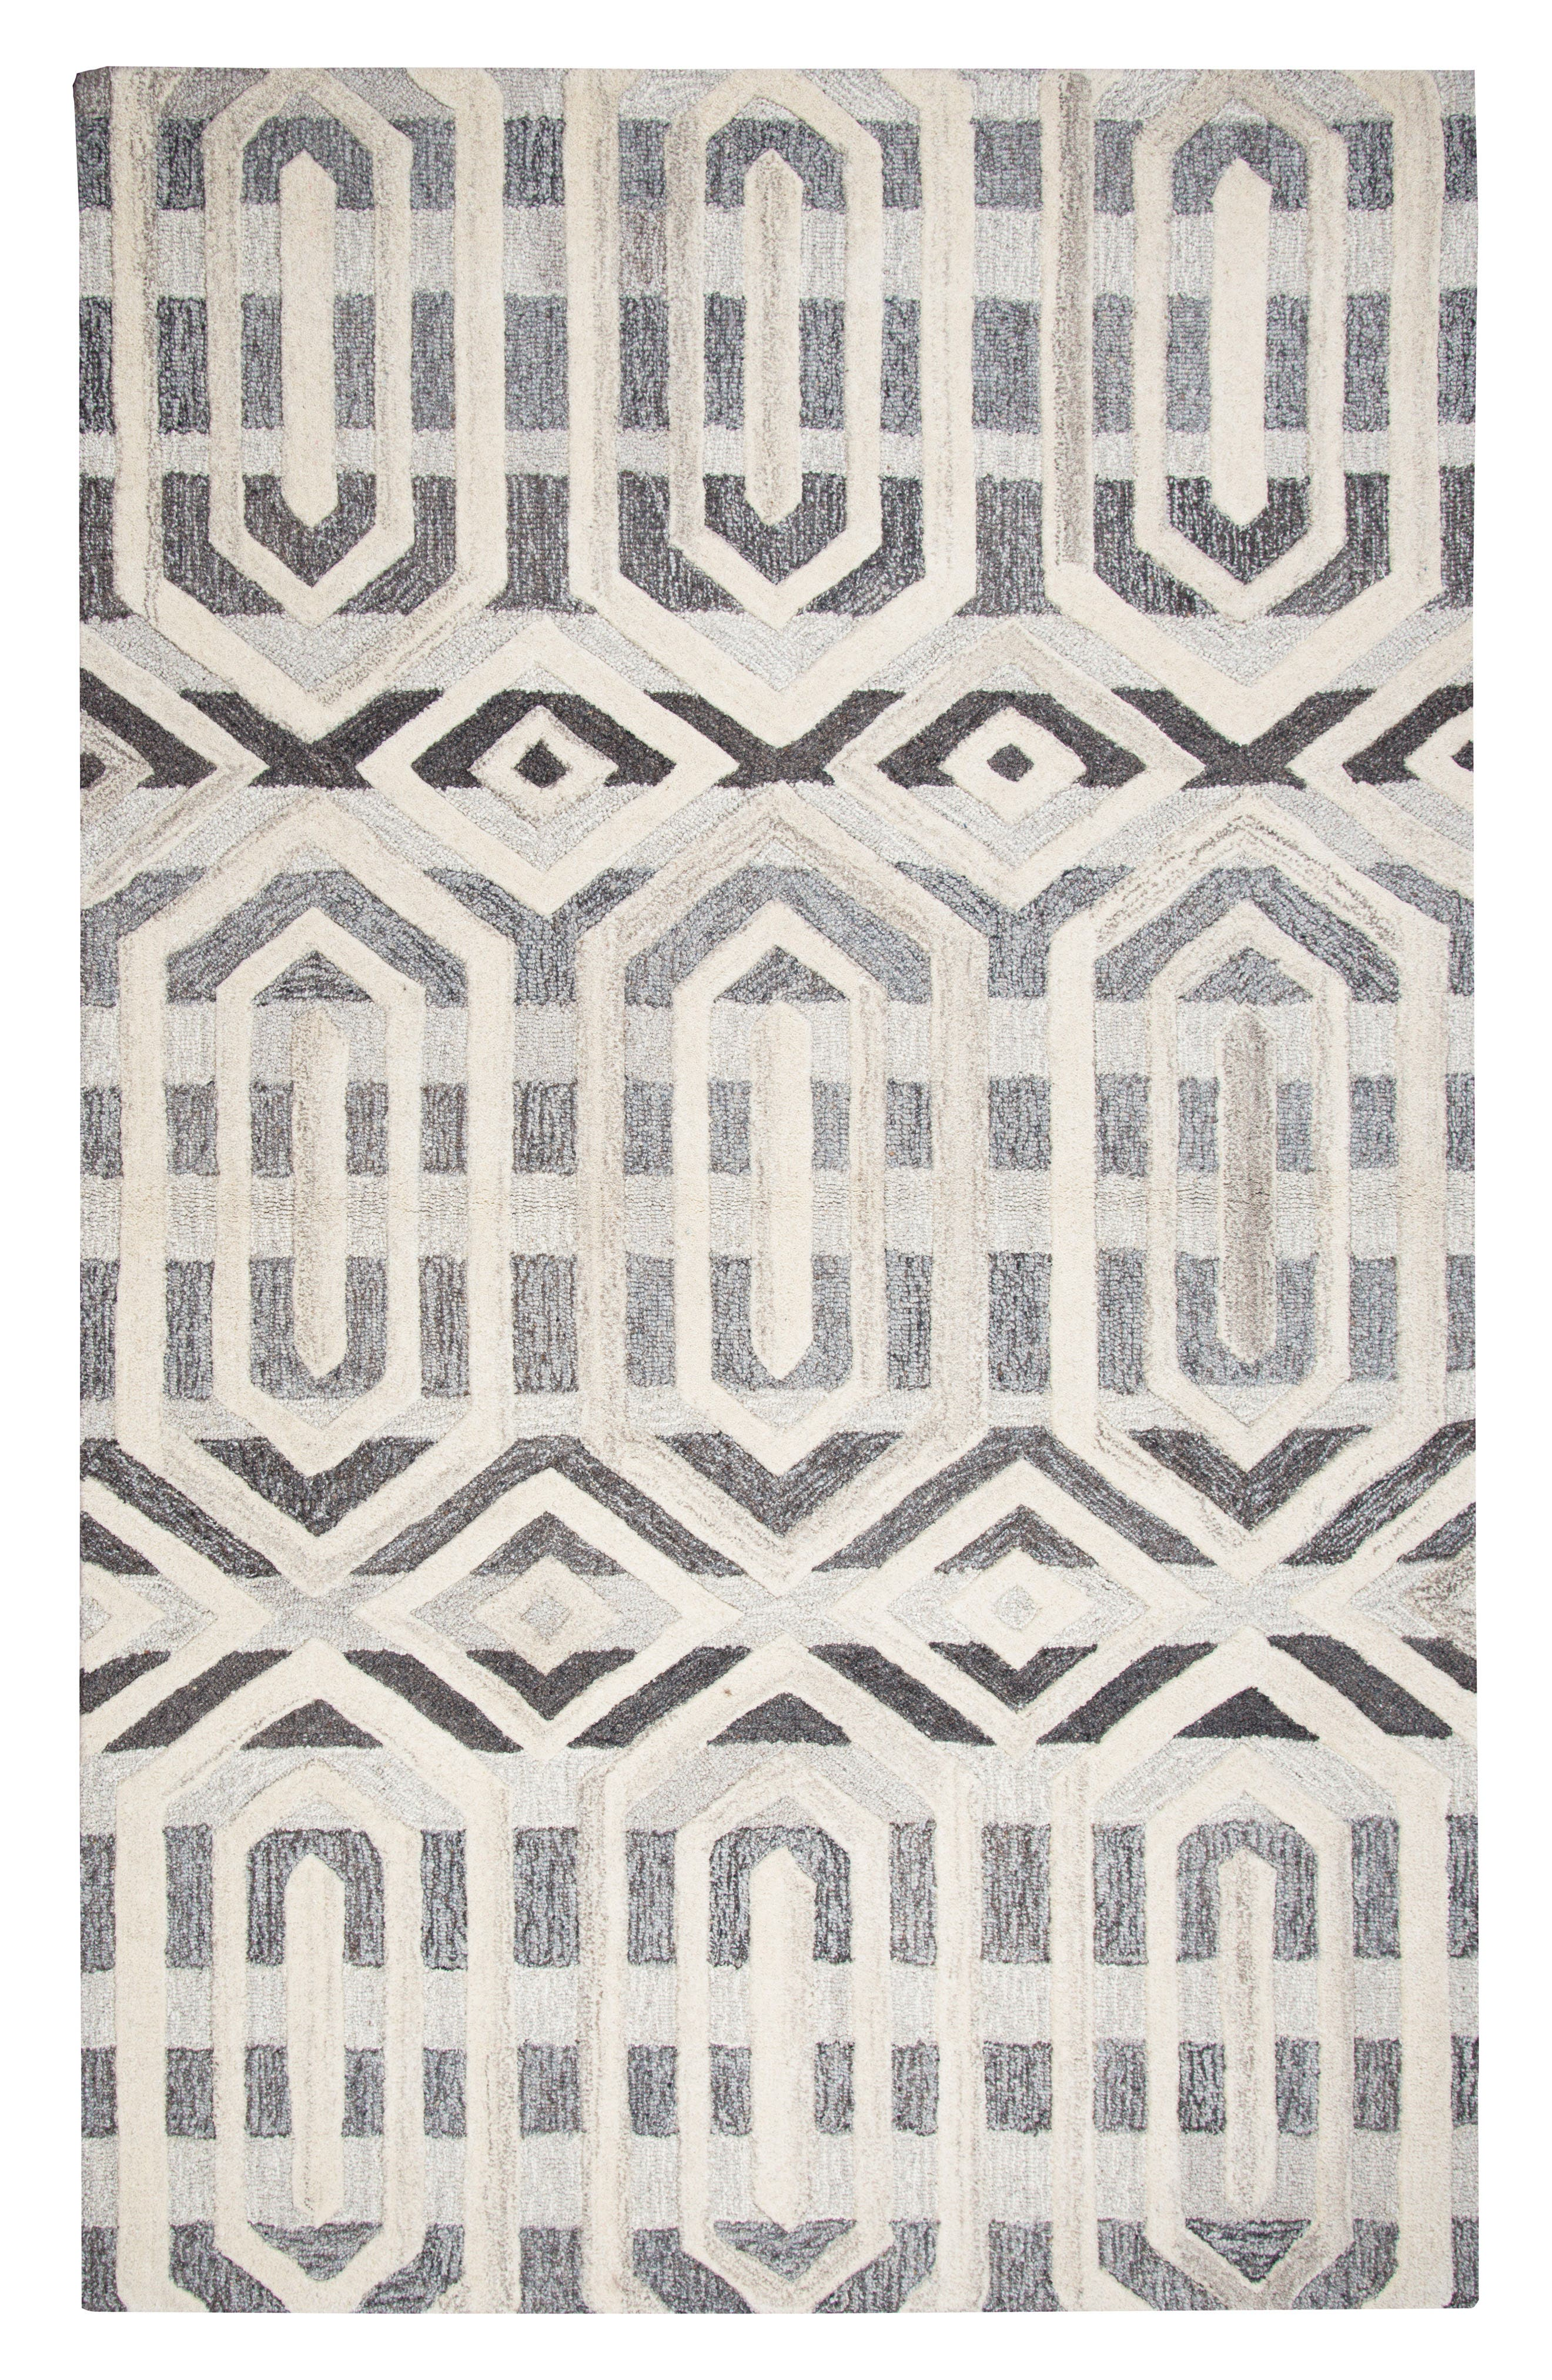 Urban Octagon Hand Tufted Wool Area Rug,                         Main,                         color, 020